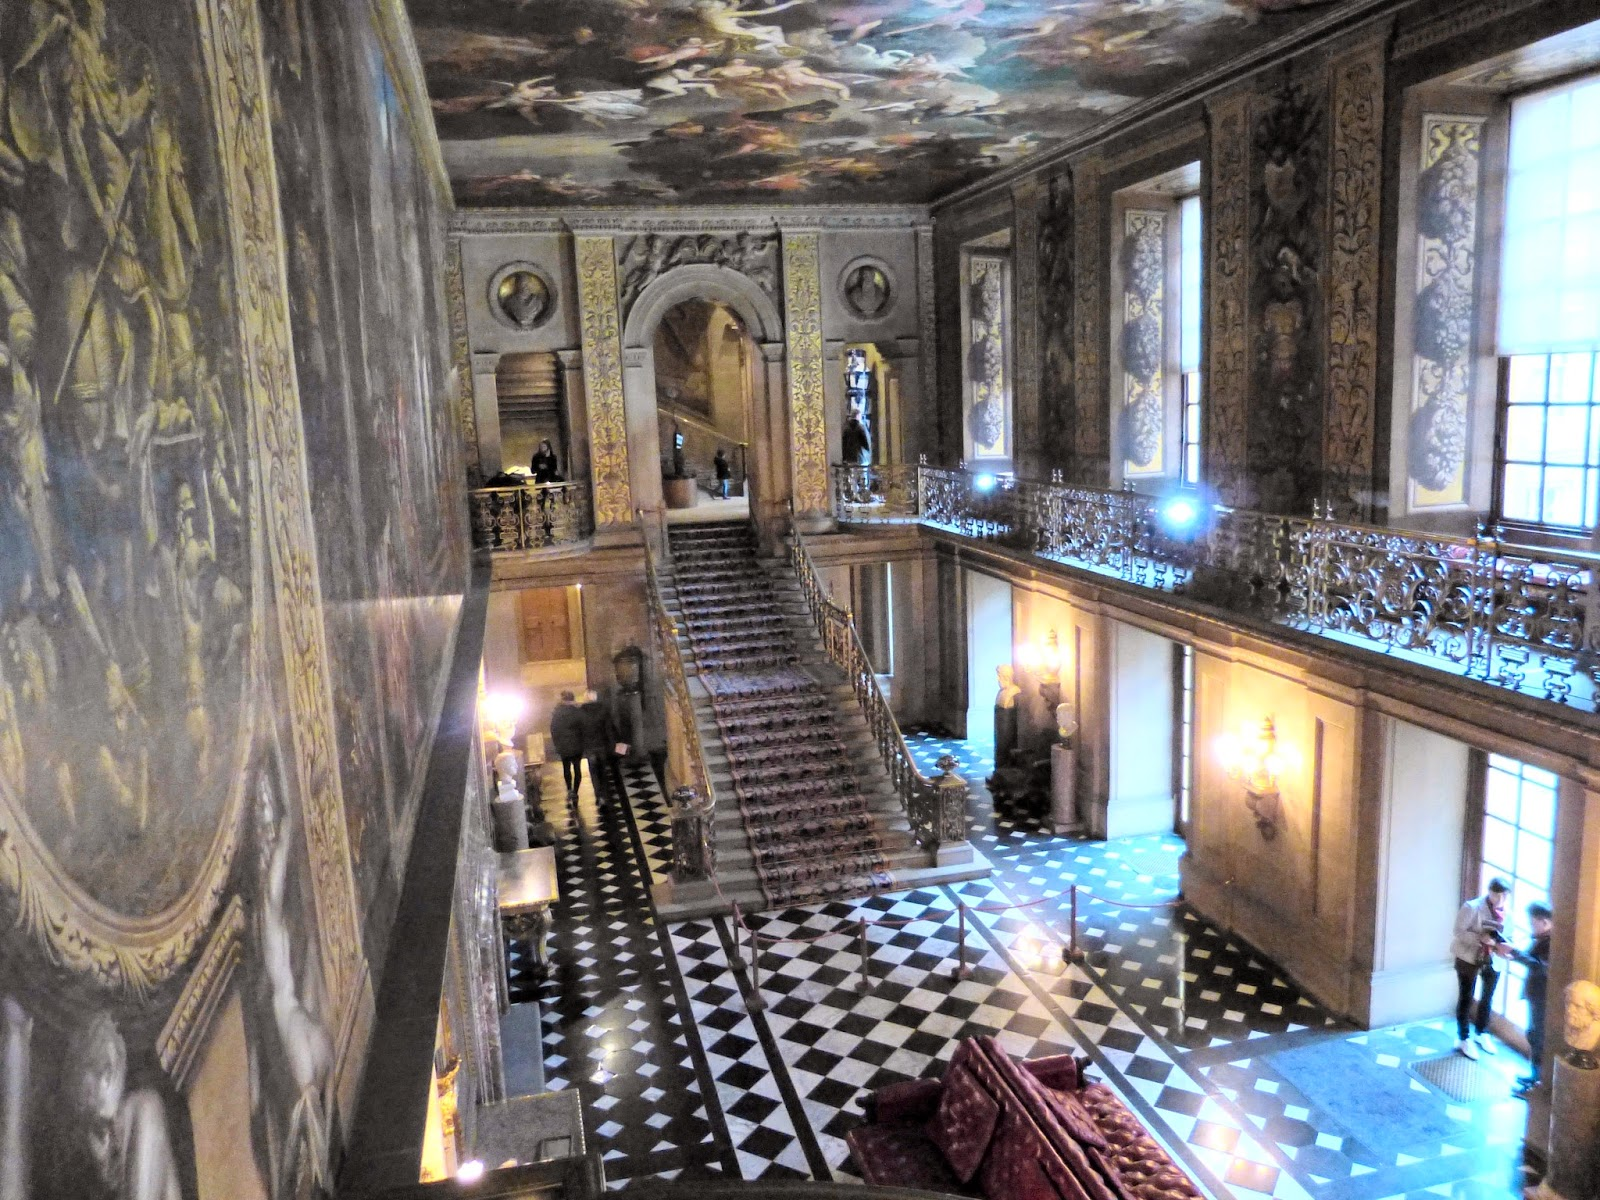 The Painted Hall, Chatsworth, from the balcony